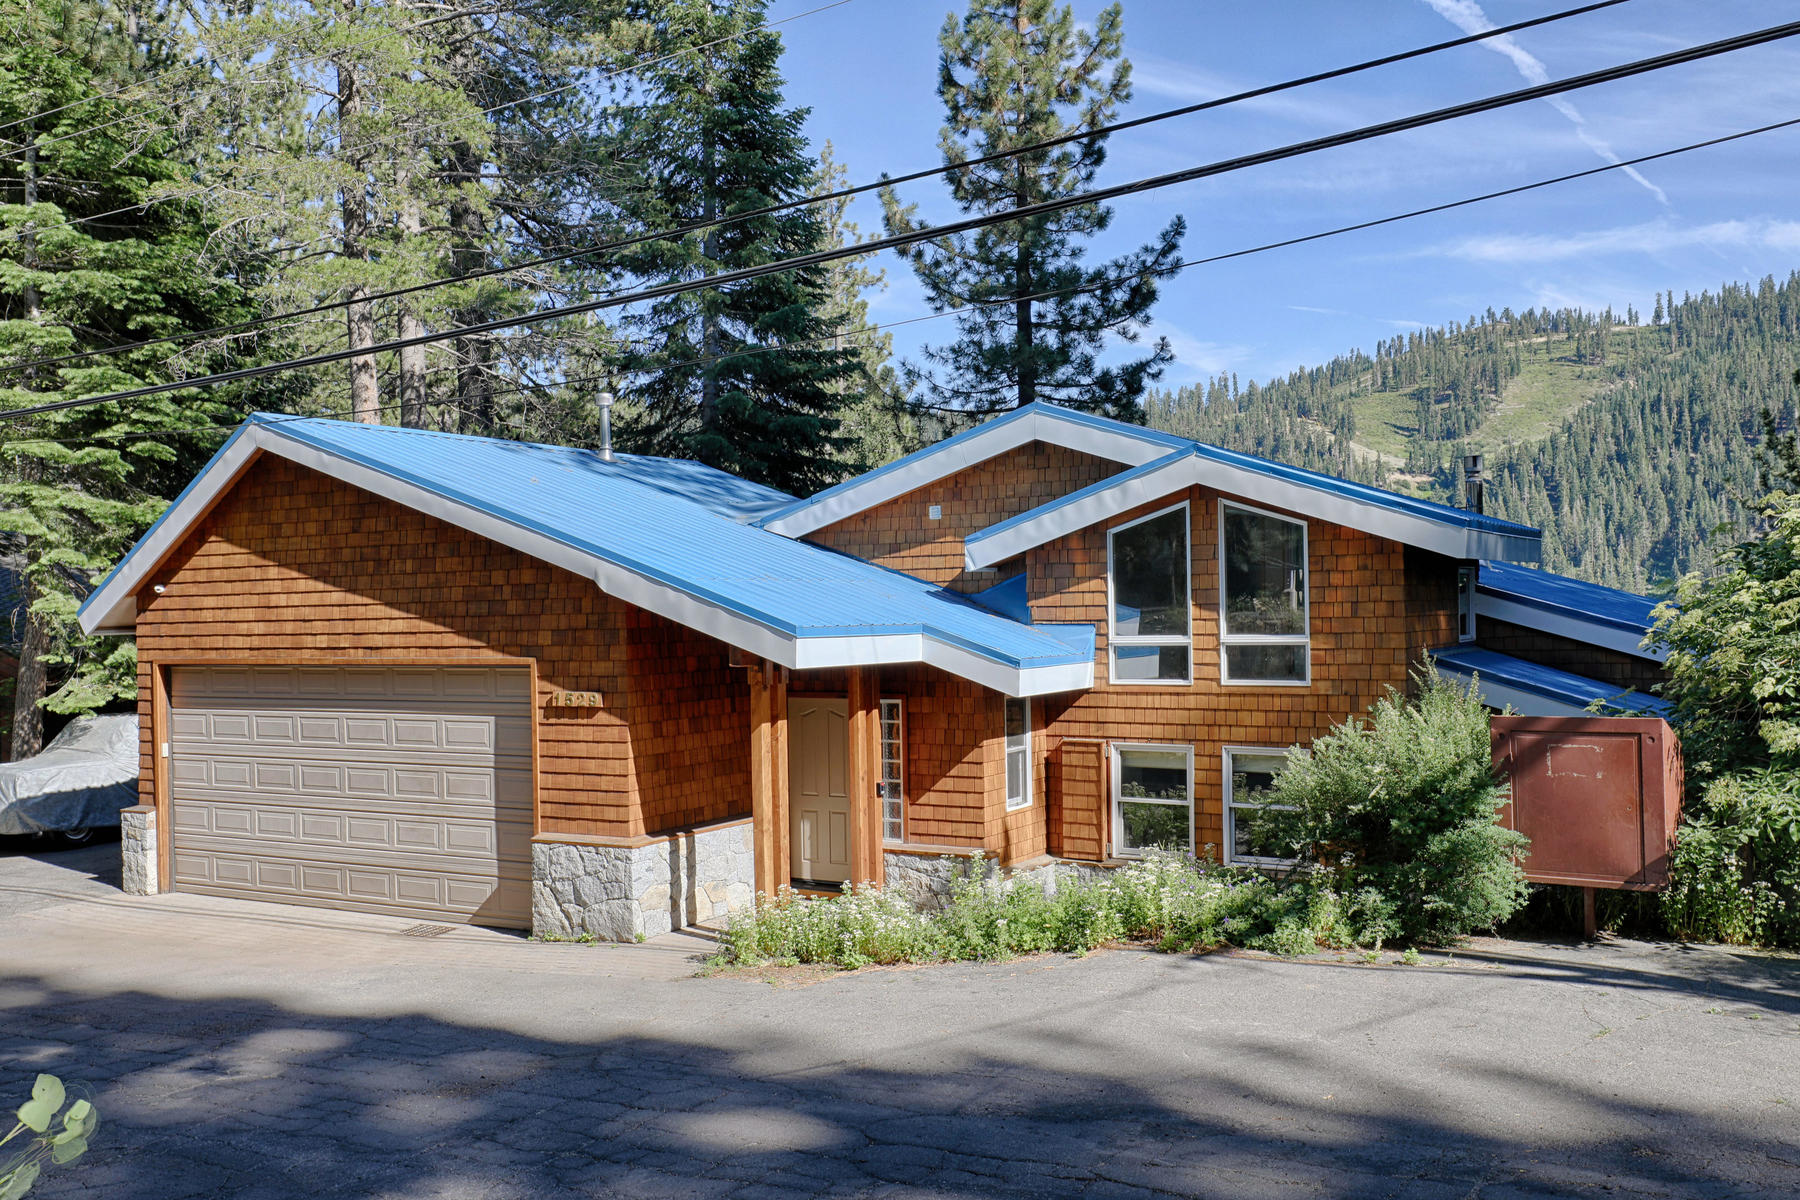 Single Family Home for Active at 1529 Sandy Way, Olympic Valley, CA 1529 Sandy Way Olympic Valley, California 96146 United States